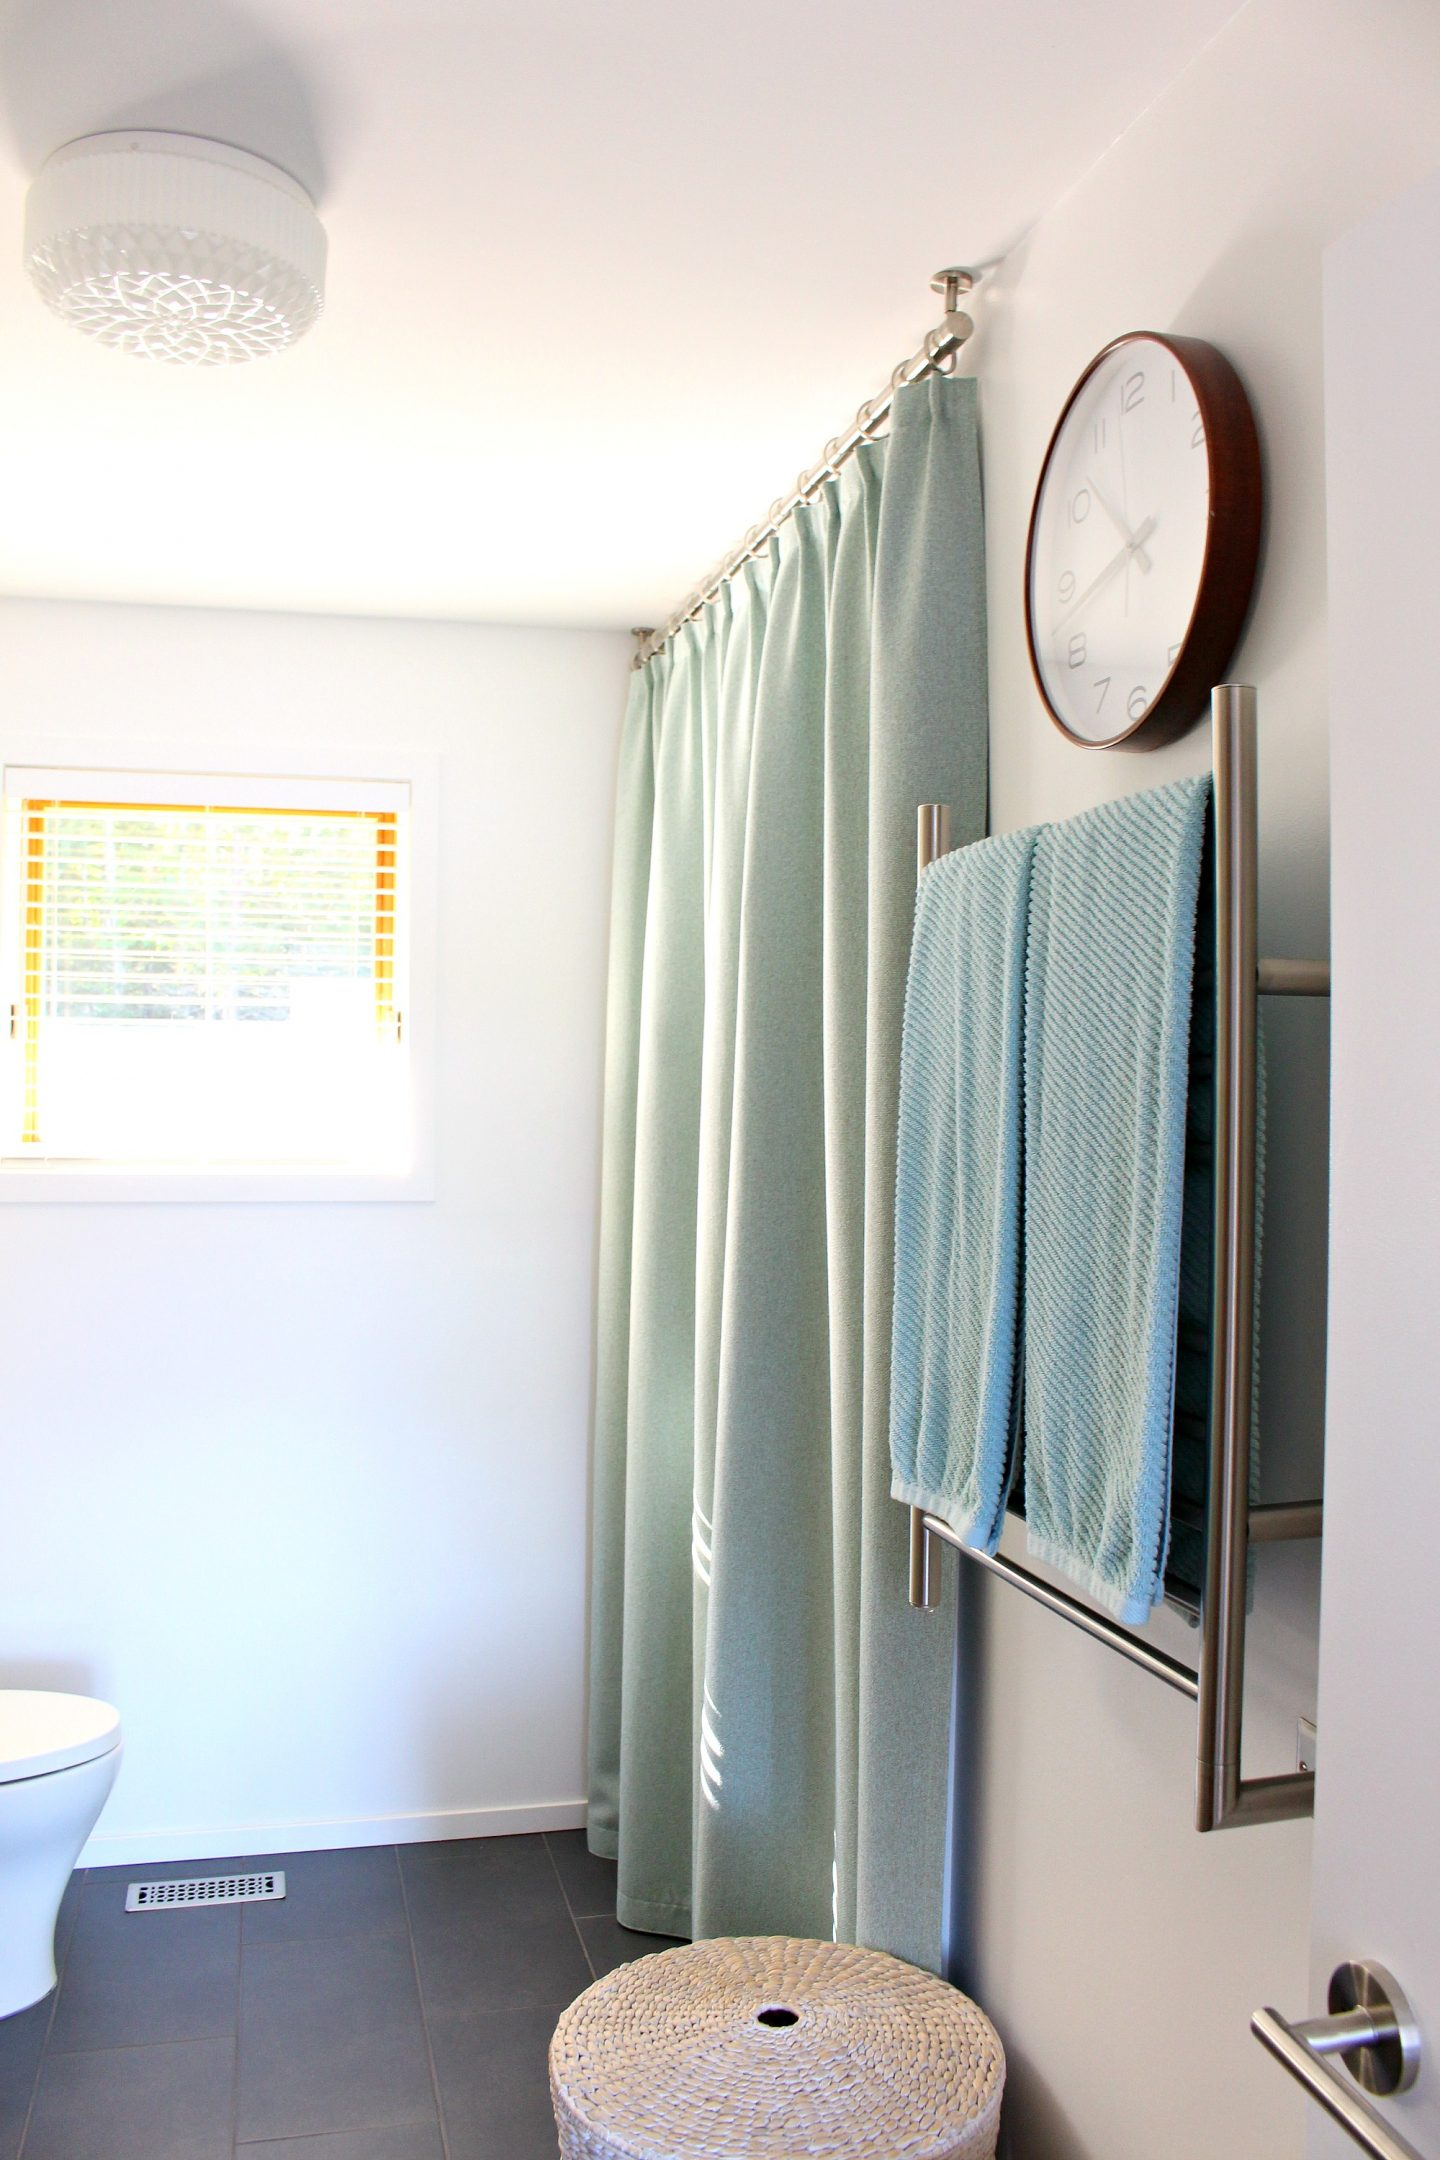 Bathroom Shower Curtain Bathroom Update Ceiling Mounted Shower Curtain Rod Turquoise